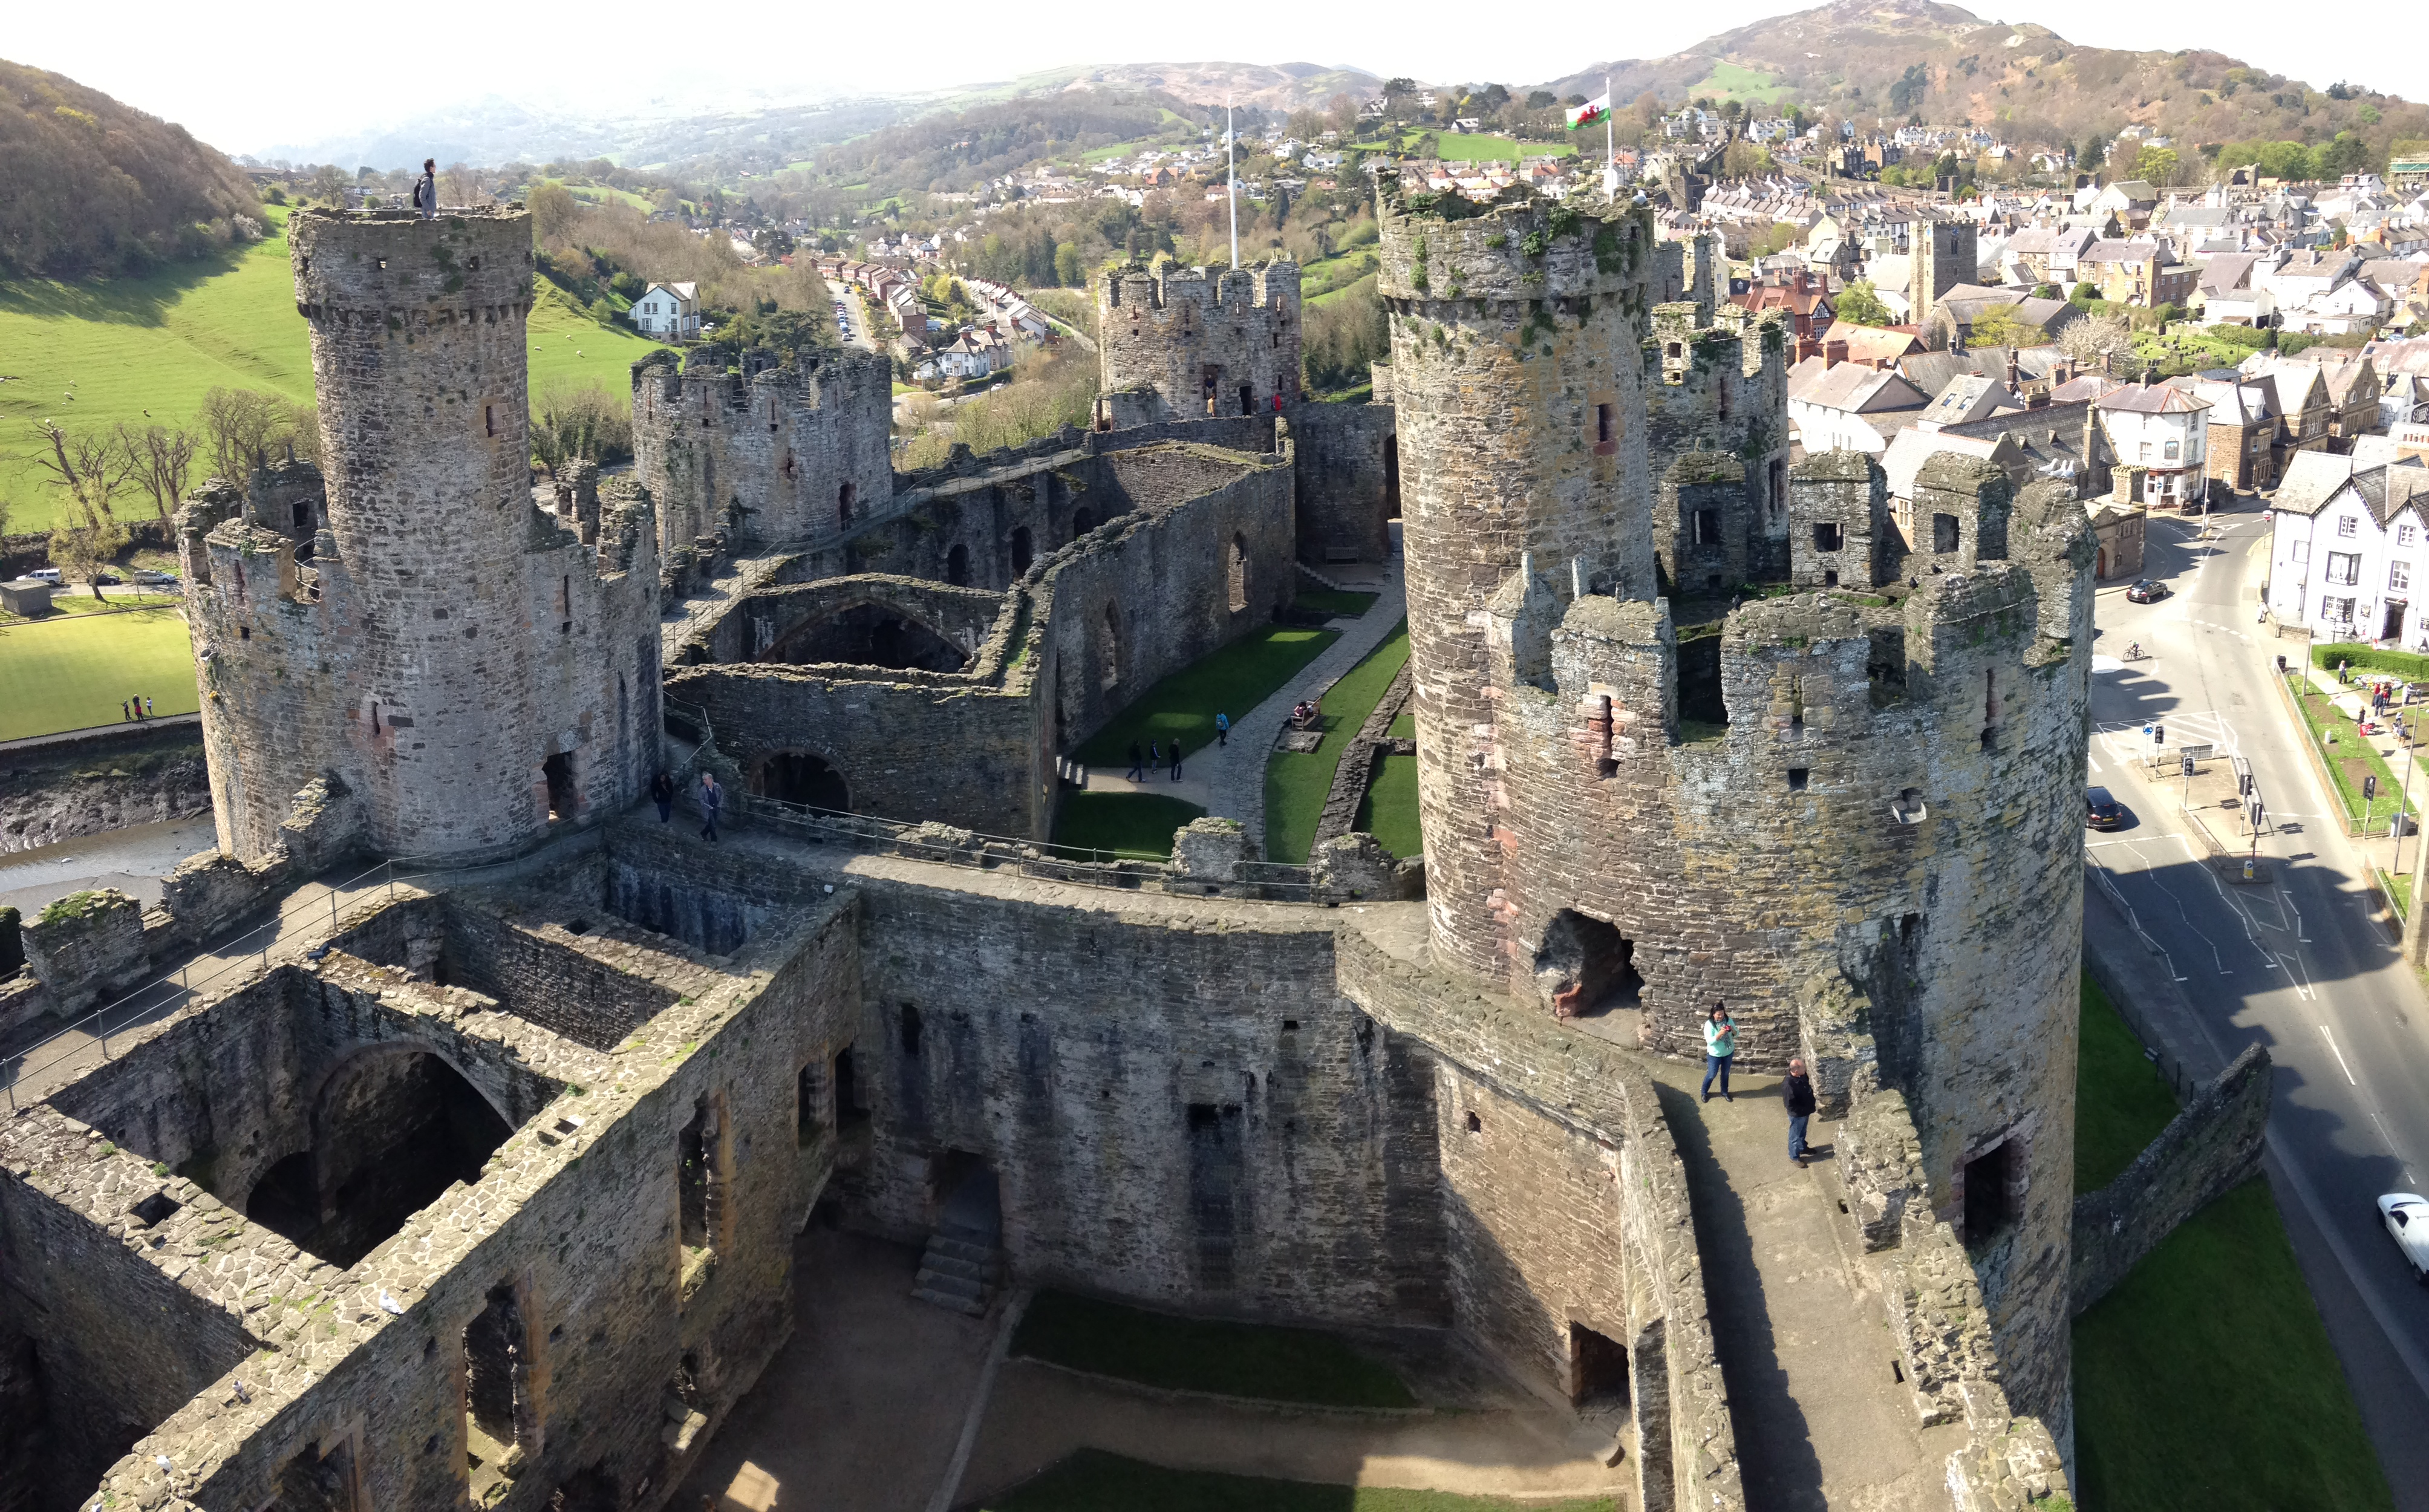 essays on medieval castles The secrets of medieval castles medieval castles were more than just large fortresses with massive stone walls they were ingeniously designed fortifications that used many brilliant and creative ways to protect their inhabitants from attacking enemies.